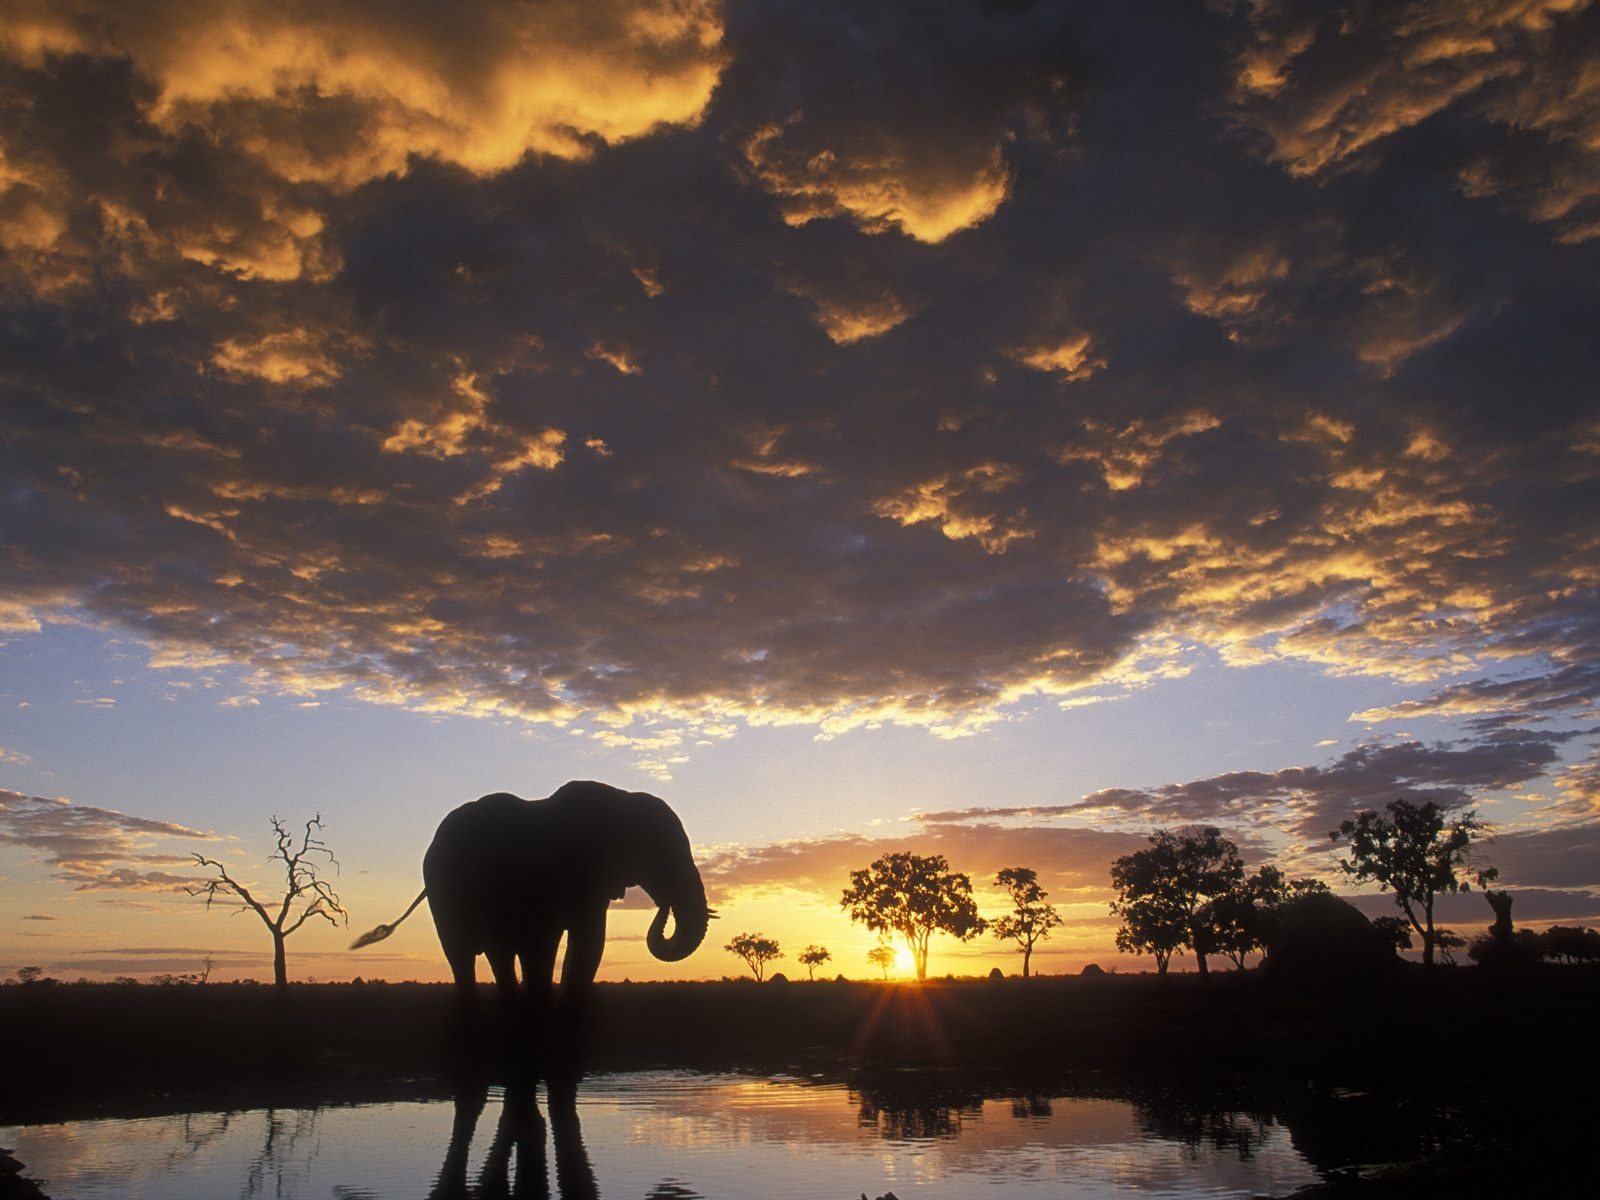 Wild Holiday, Chobe National Park, Botswana, Elephant silhouett at sunset